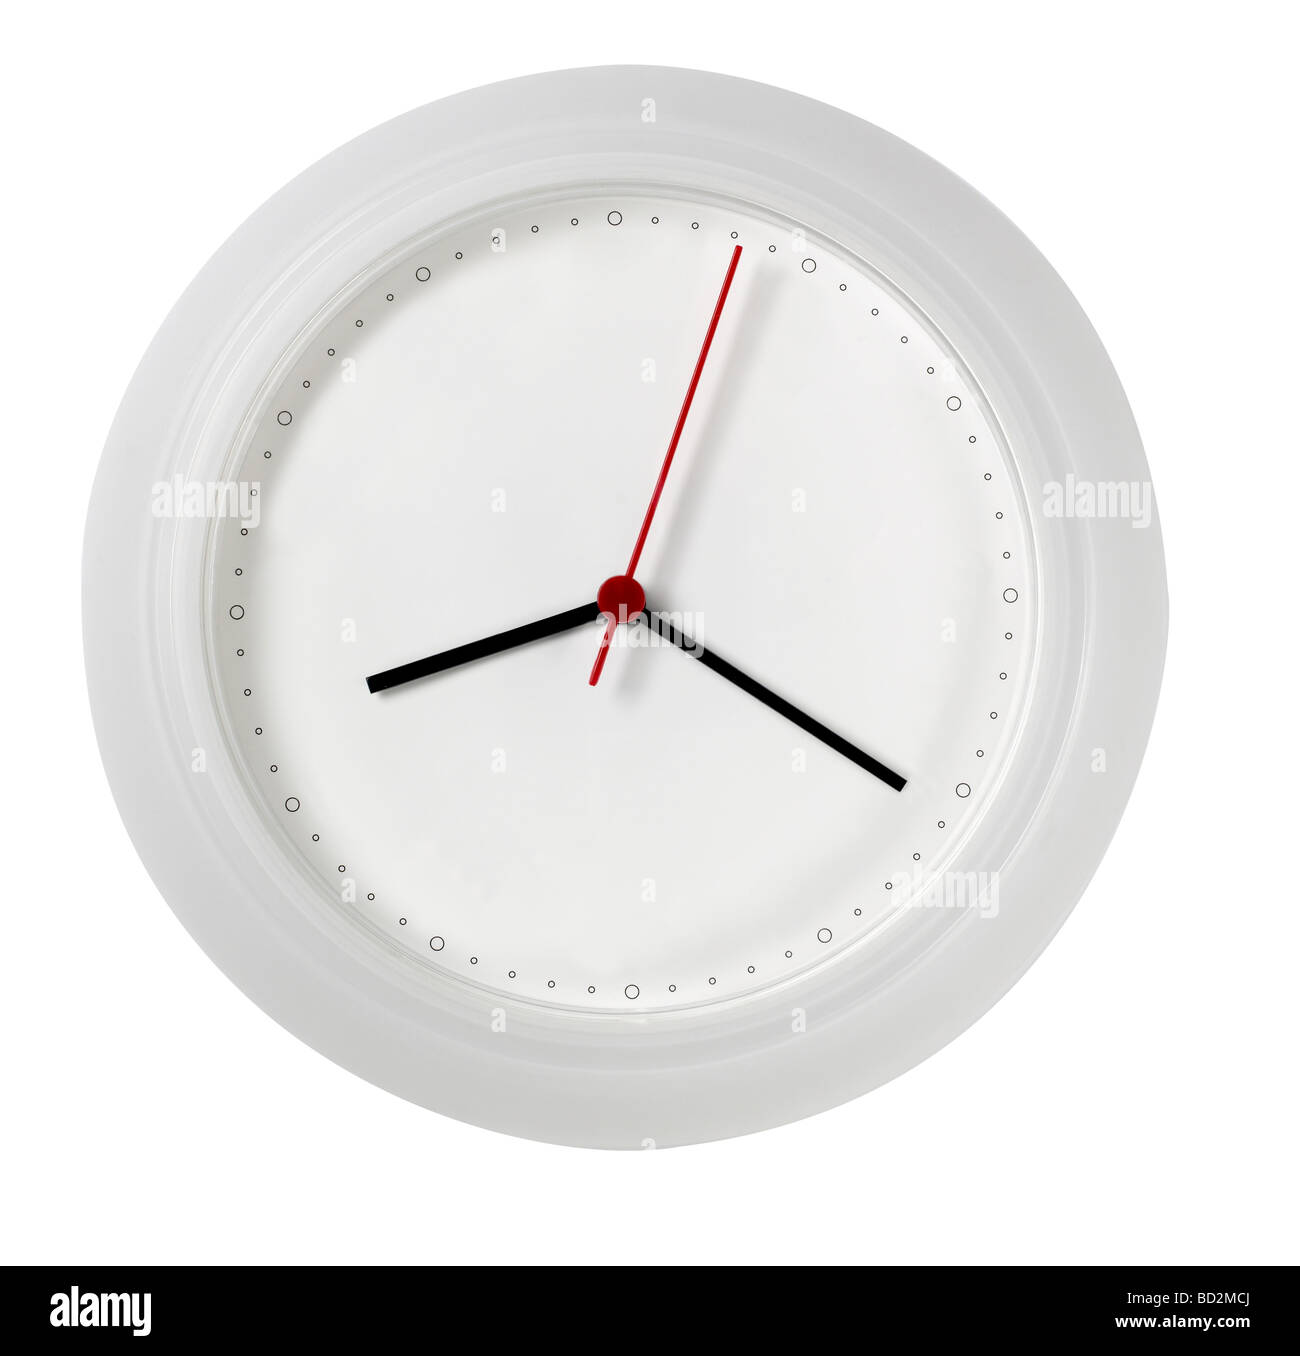 White Wall clock with no numbers blank face - Stock Image